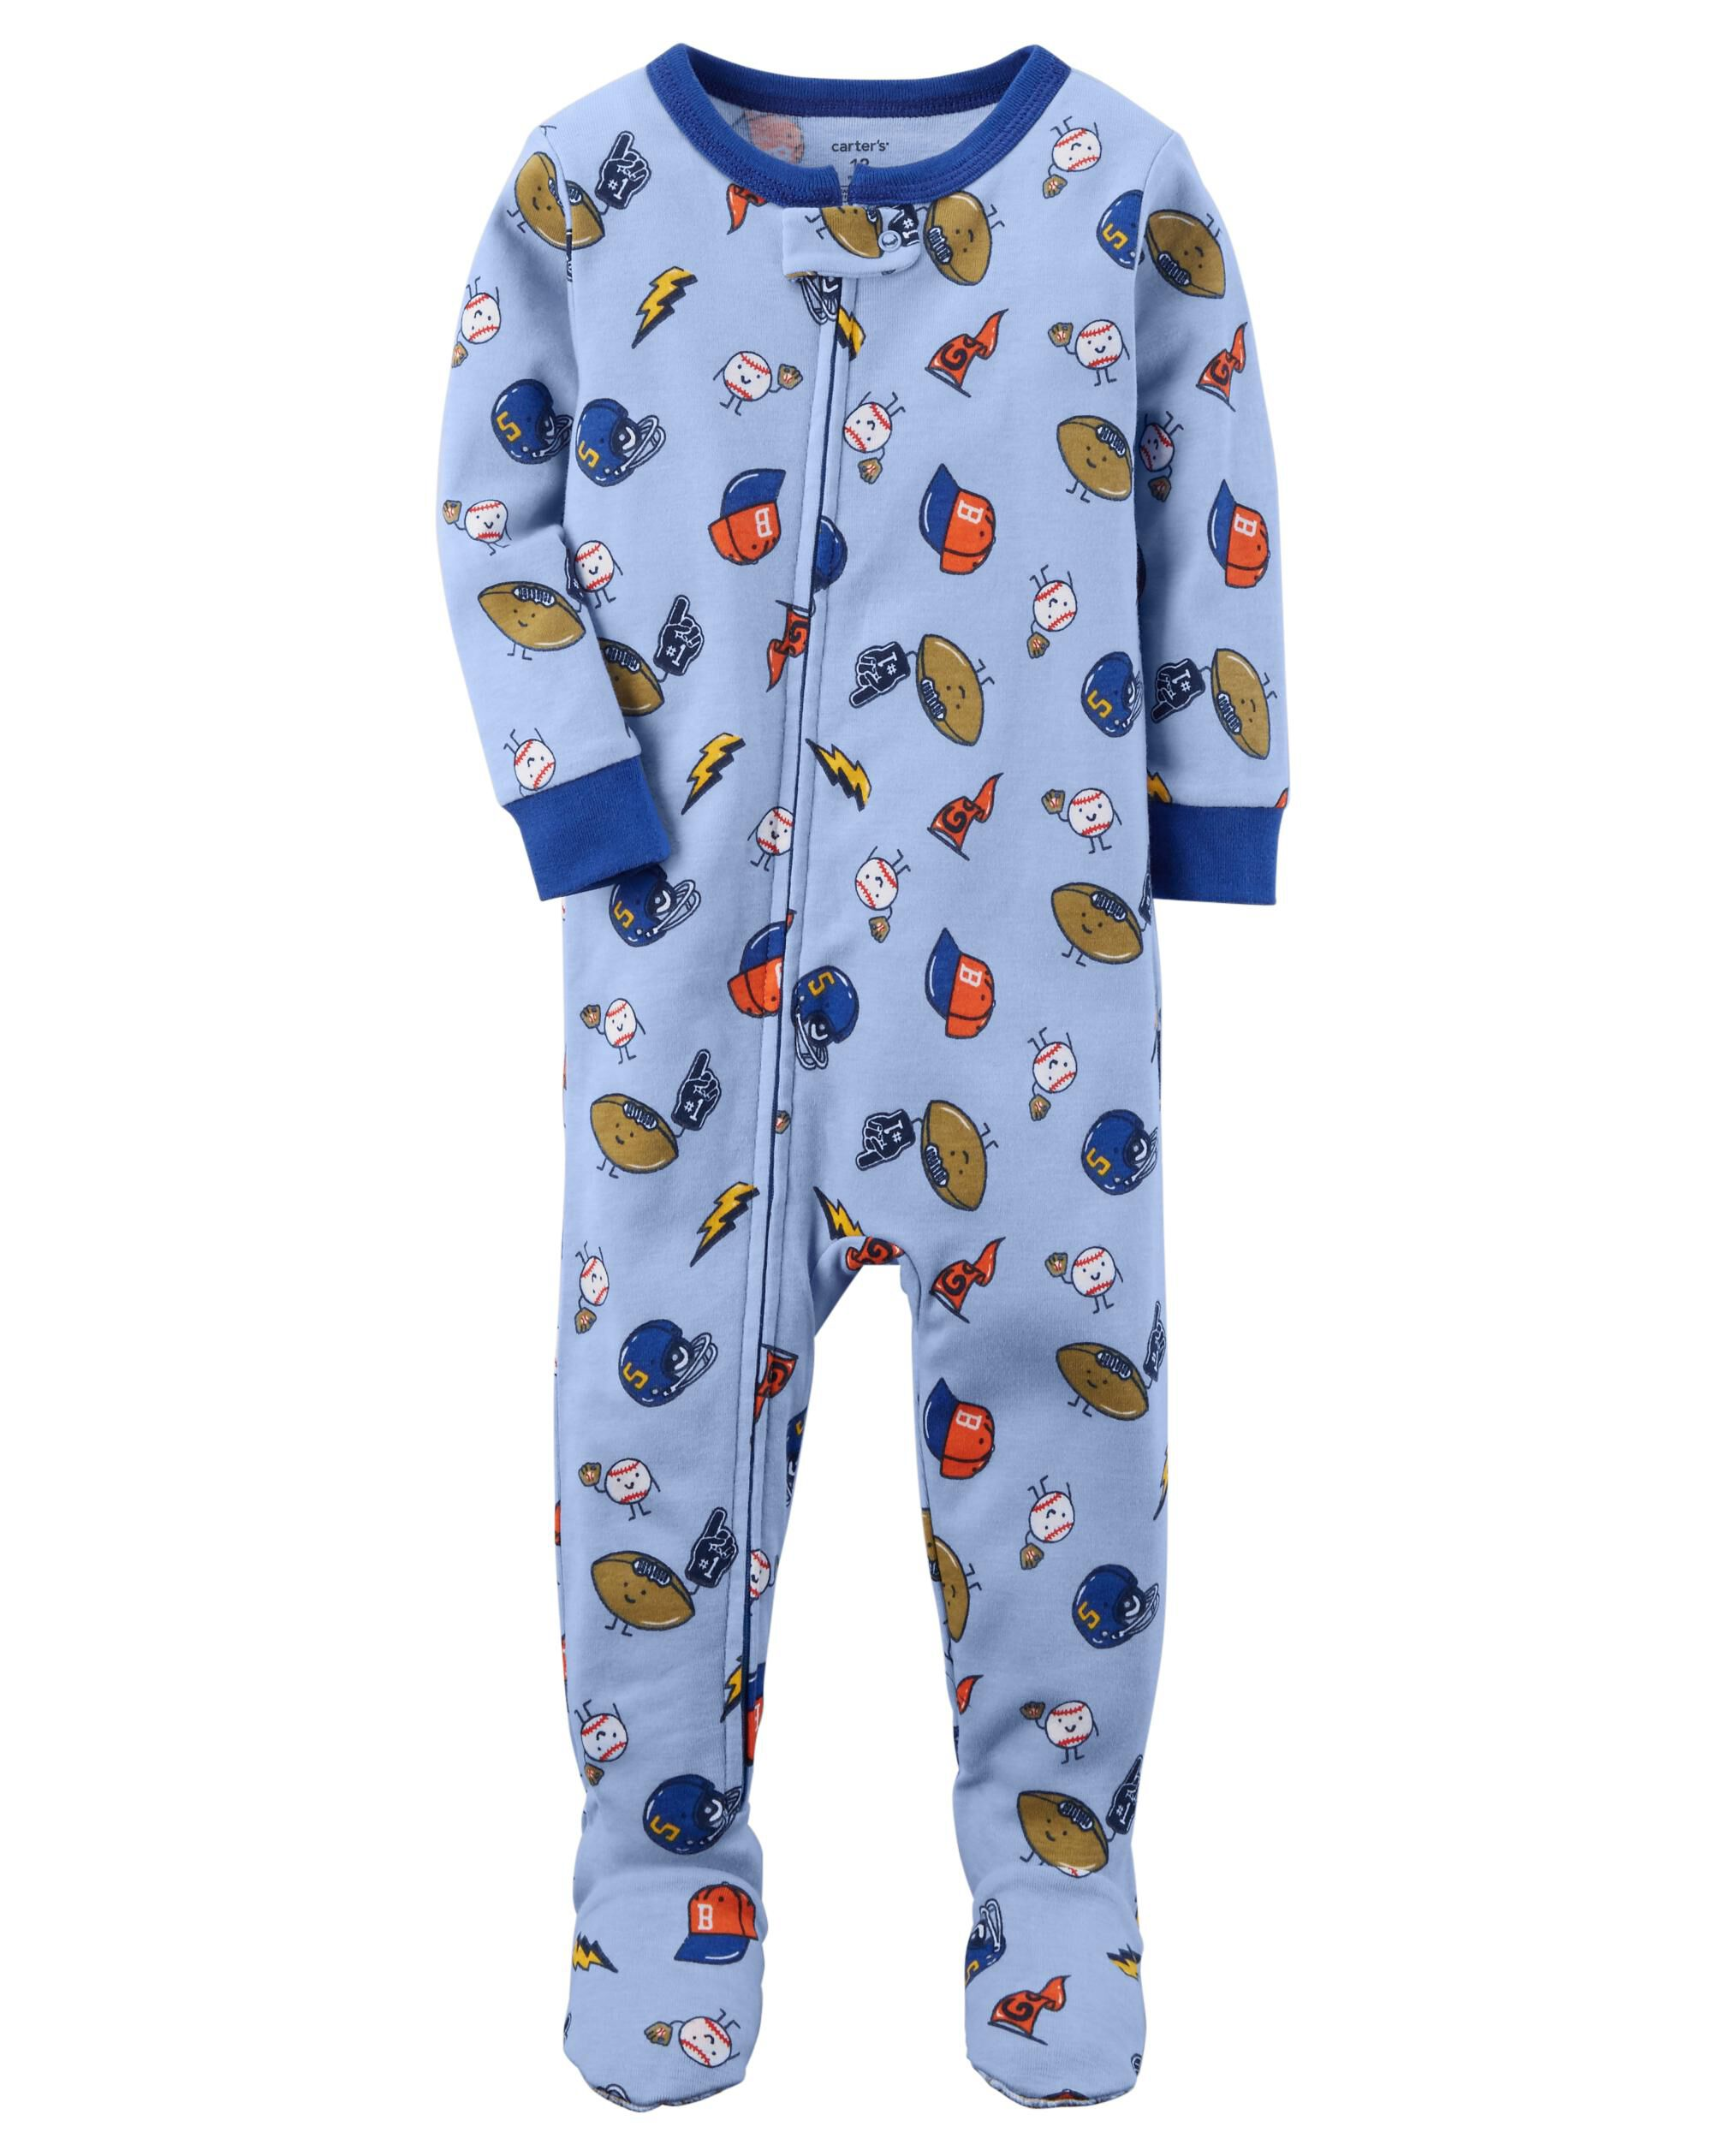 toddler boy pajamas sleepwear carter s shipping 1 piece sports snug fit cotton pjs